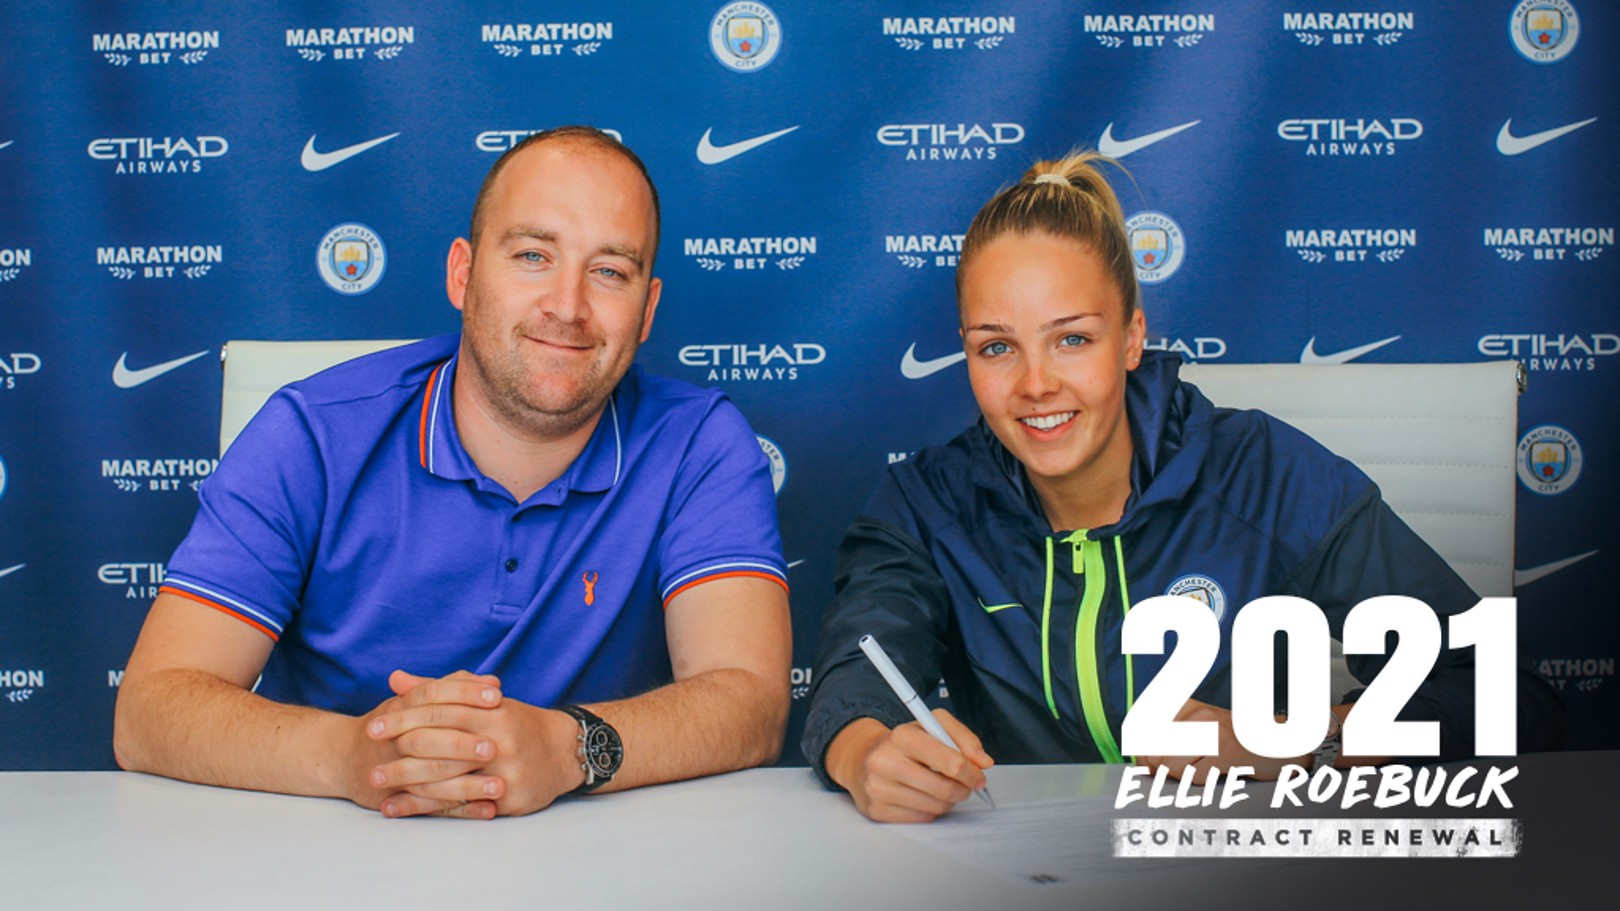 NEW DEAL: Ellie Roebuck puts pen to paper on a contract extension